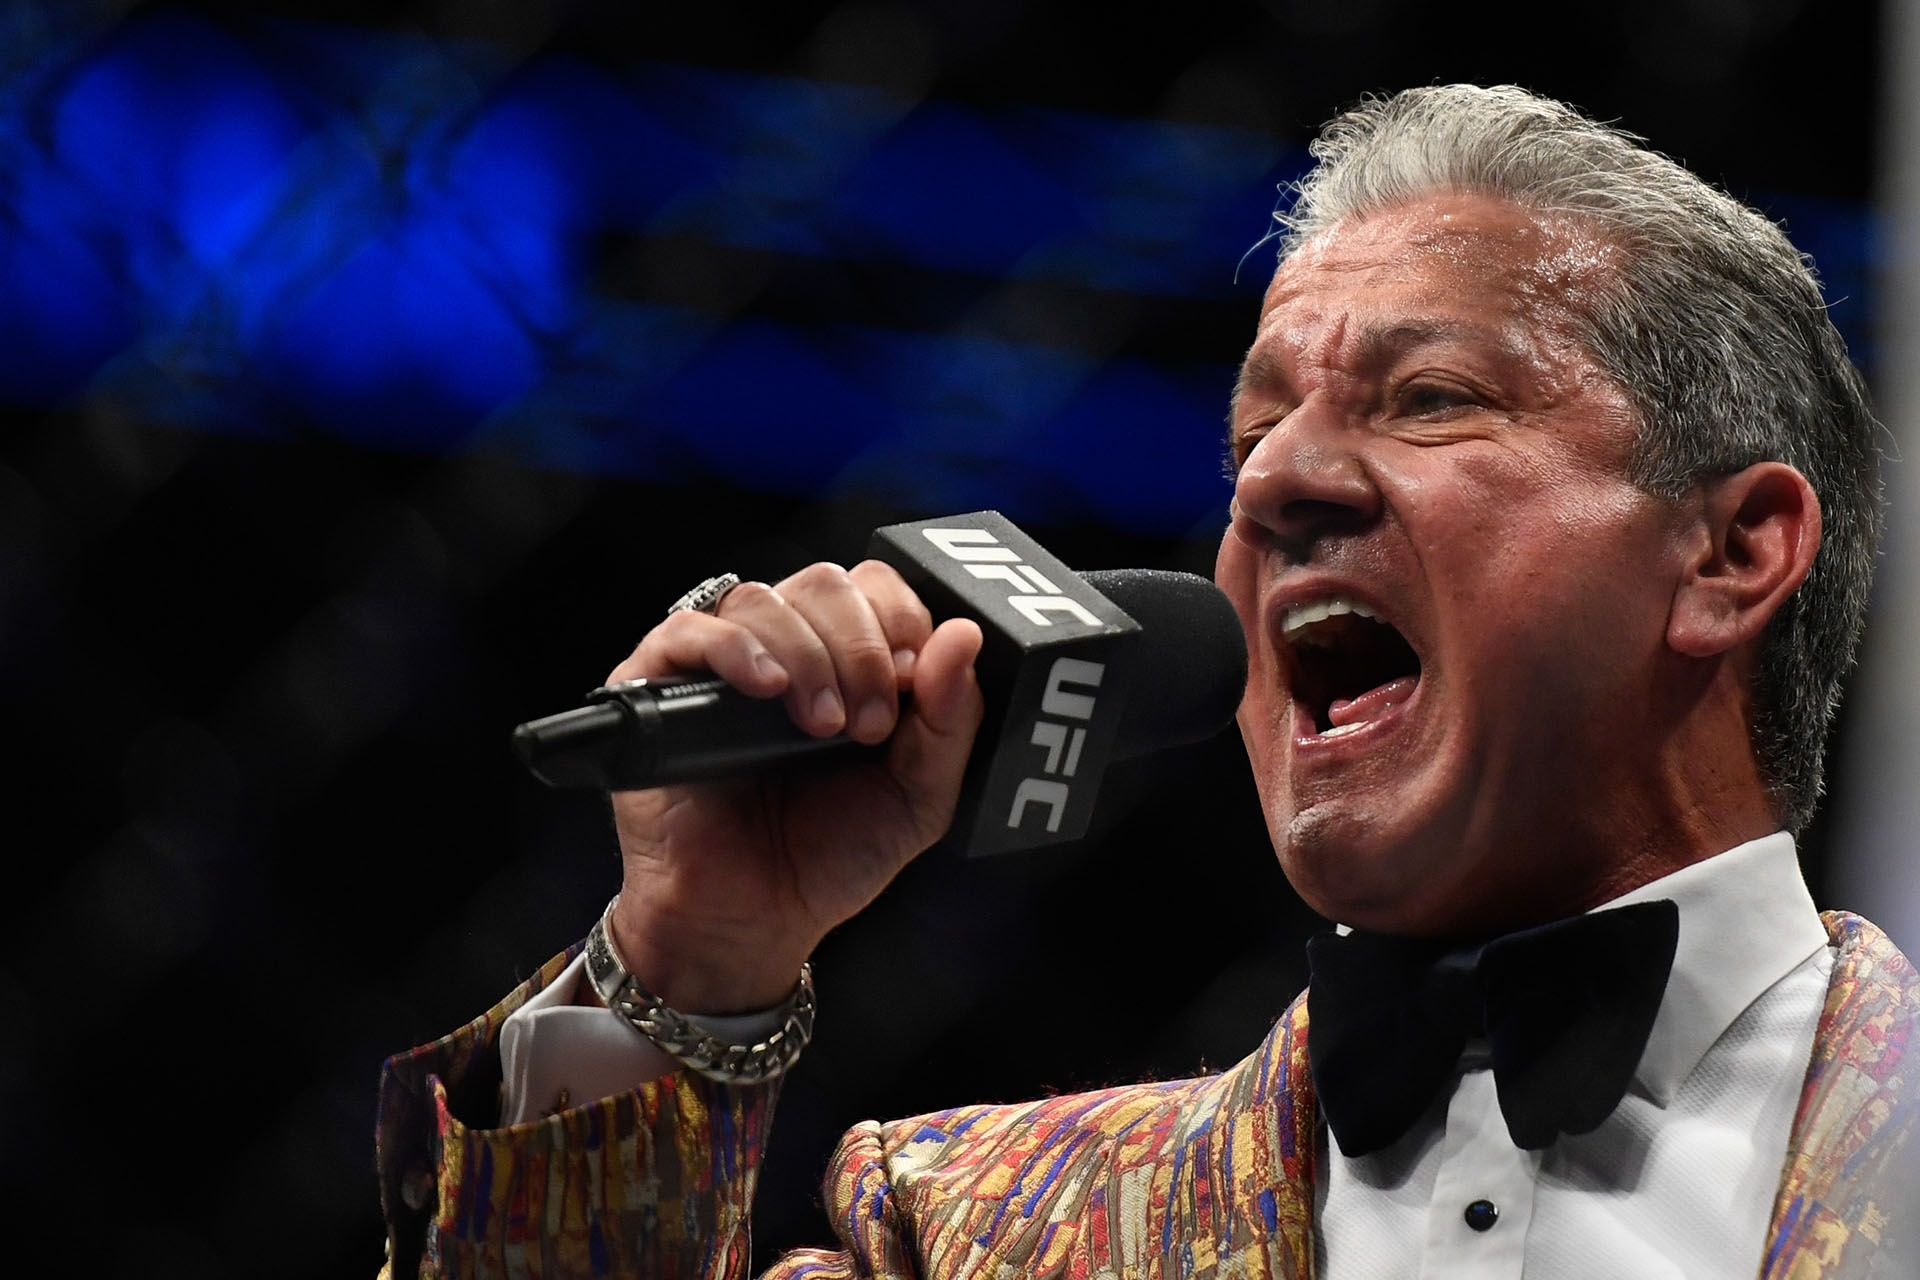 UFC Octagon announcer Bruce Buffer introduces Justin Gaethje (not pictured) of the United States and Tony Ferguson (not pictured) of the United States prior to their Interim lightweight title fight during UFC 249 at VyStar Veterans Memorial Arena on May 9, 2020 in Jacksonville, Florida. (Photo by Douglas P. DeFelice/Getty Images)